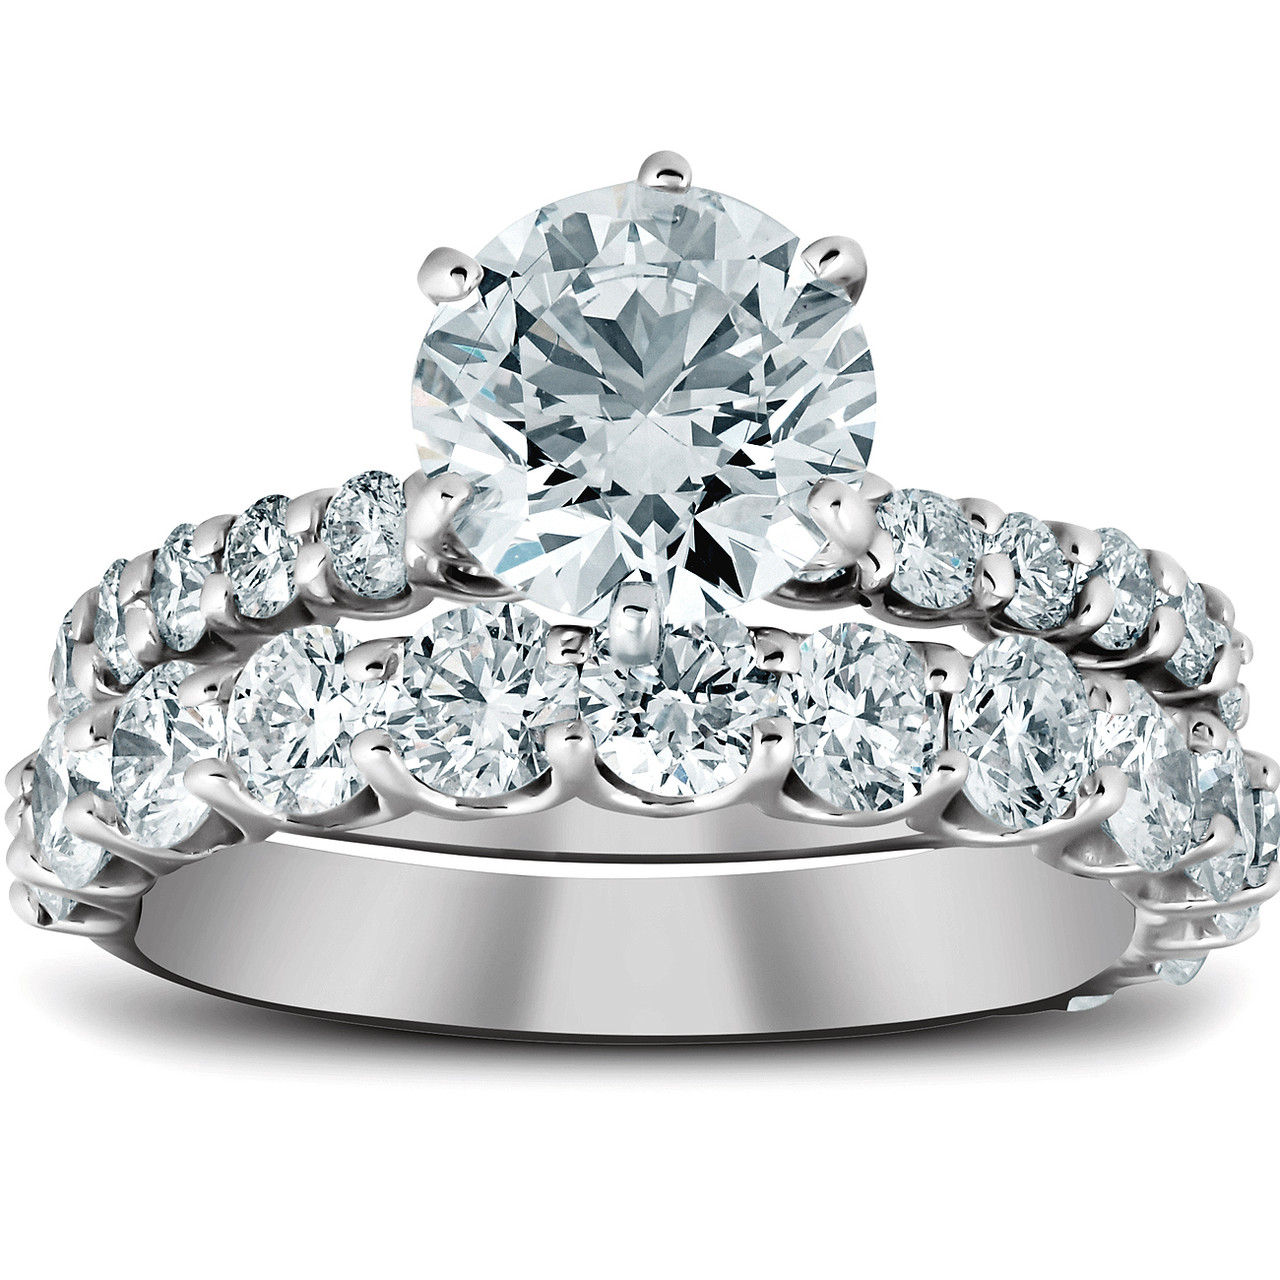 Round Cut 2.95 Carat 14KT Solid White Gold Solitaire Classy Engagement Ring